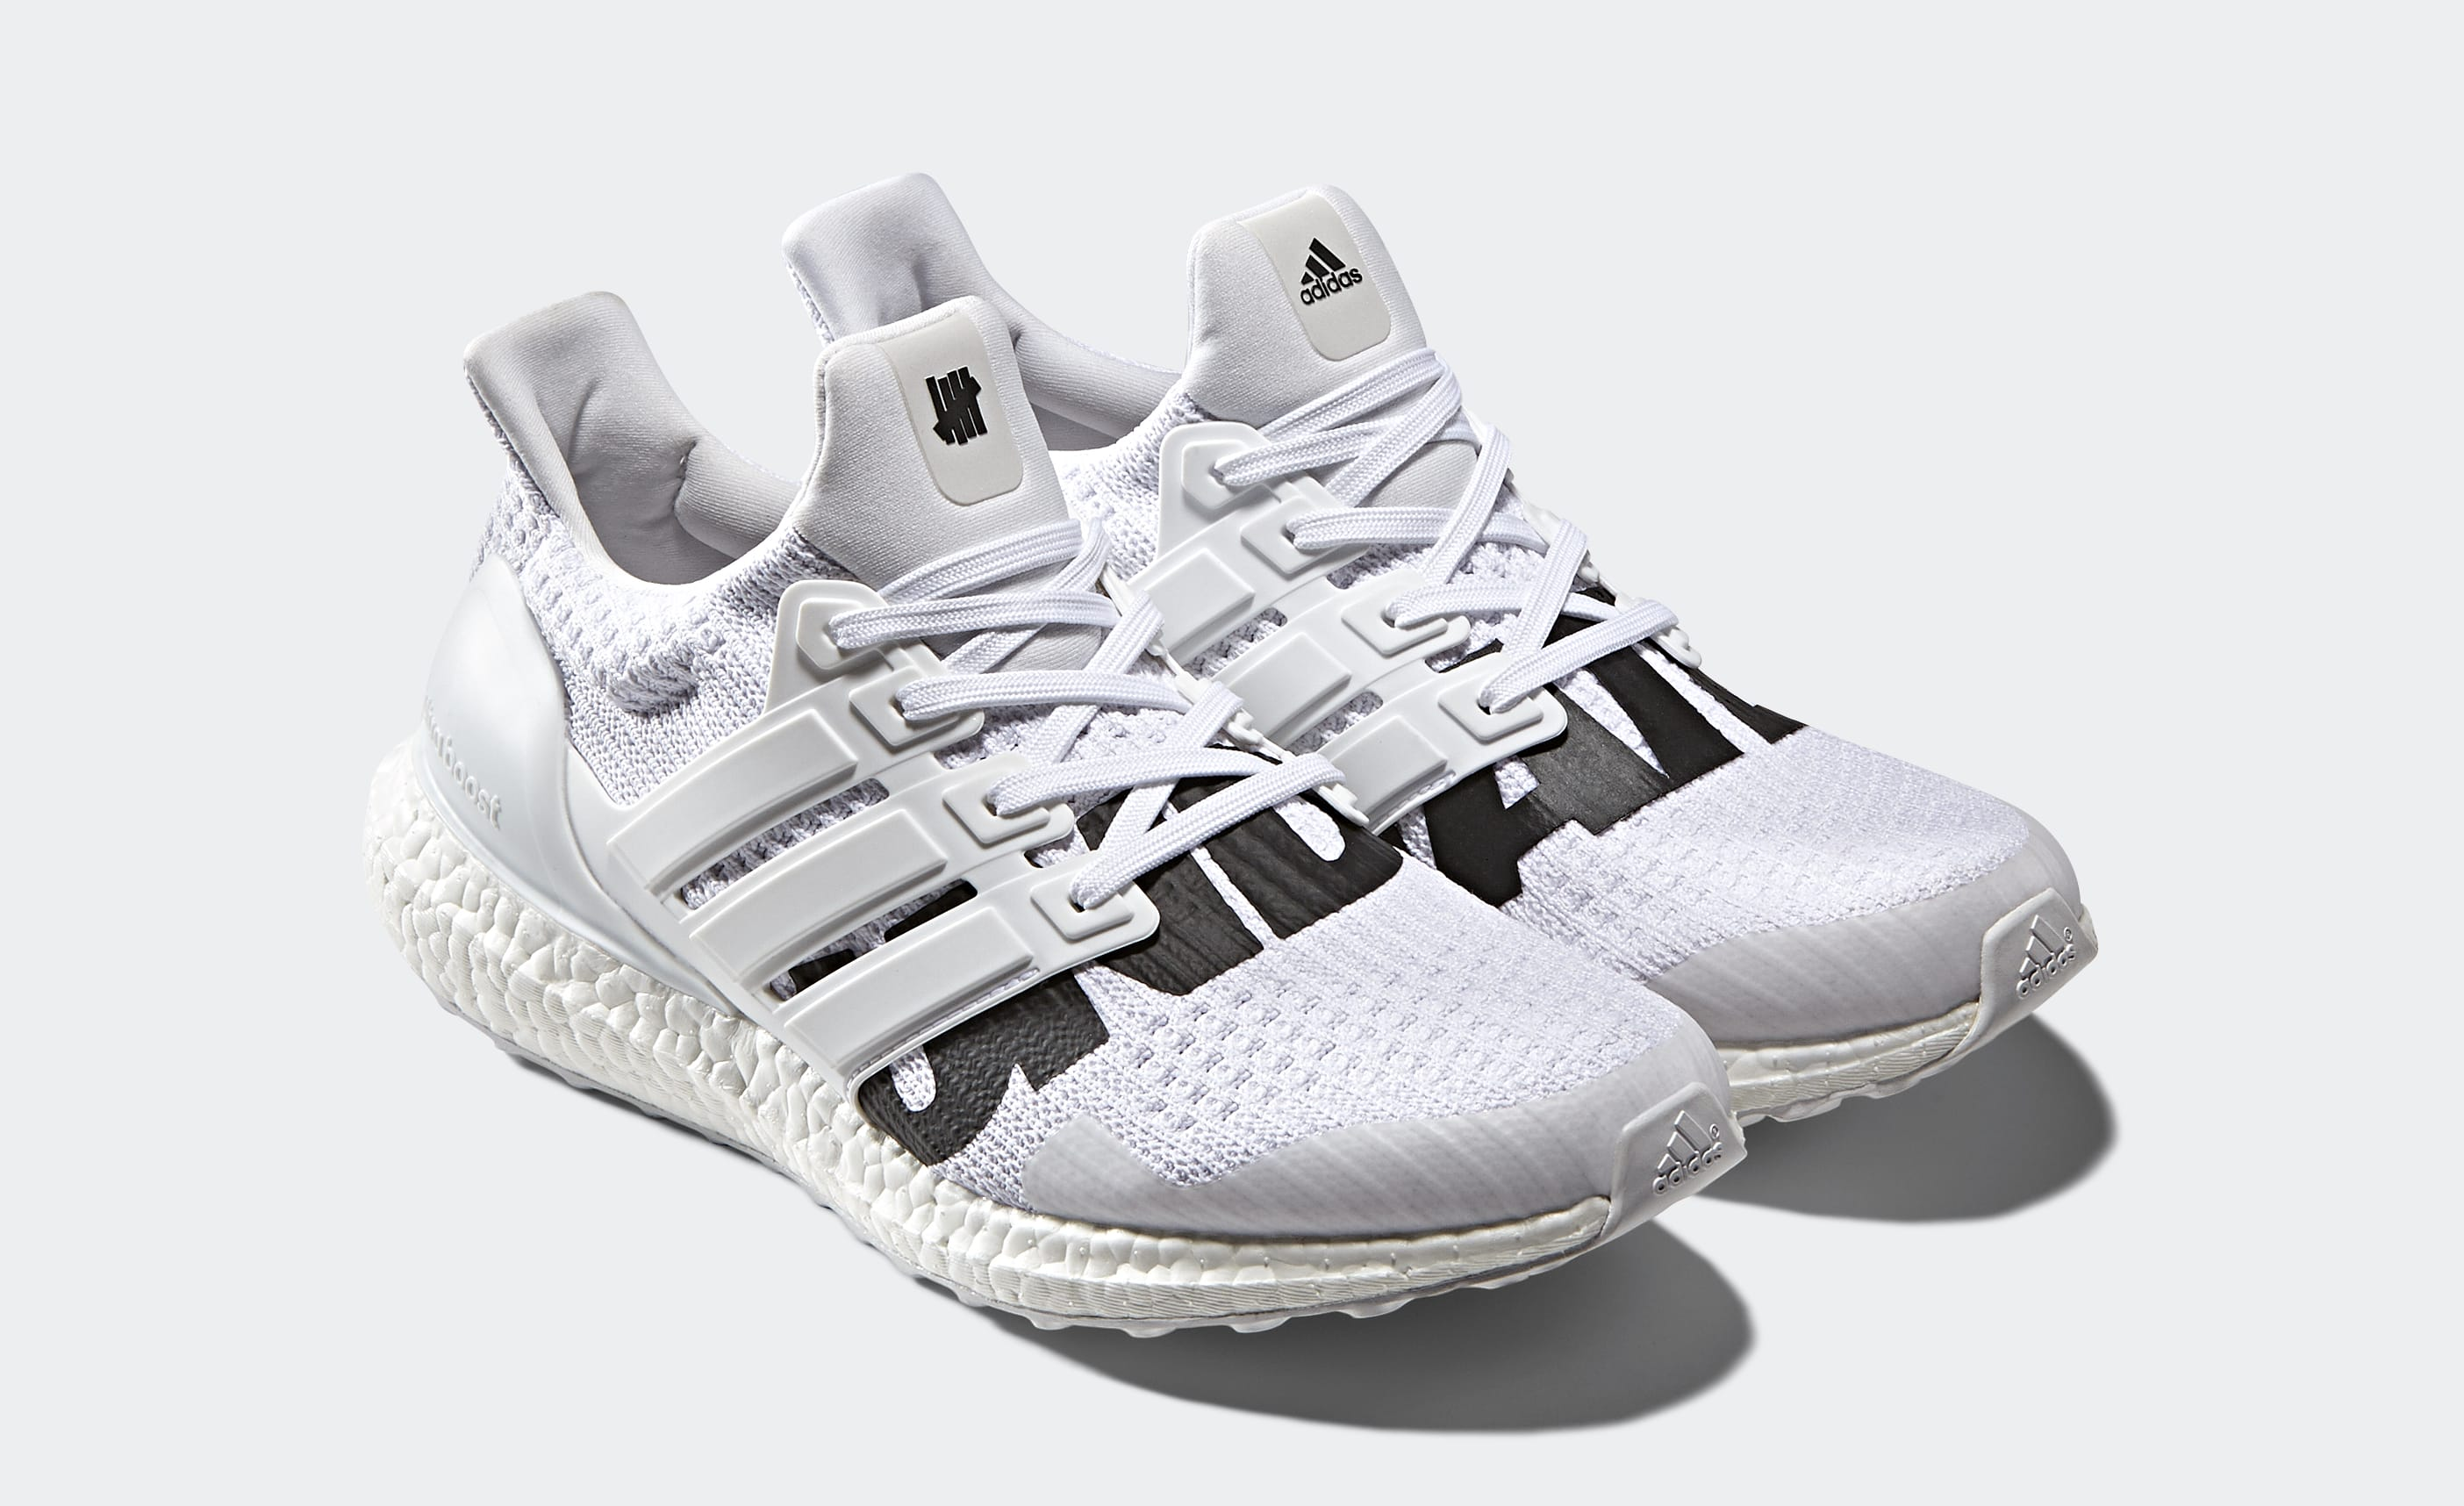 a3be19242c464 Image via Adidas Undefeated x Adidas Ultra Boost BB9102 (Pair)